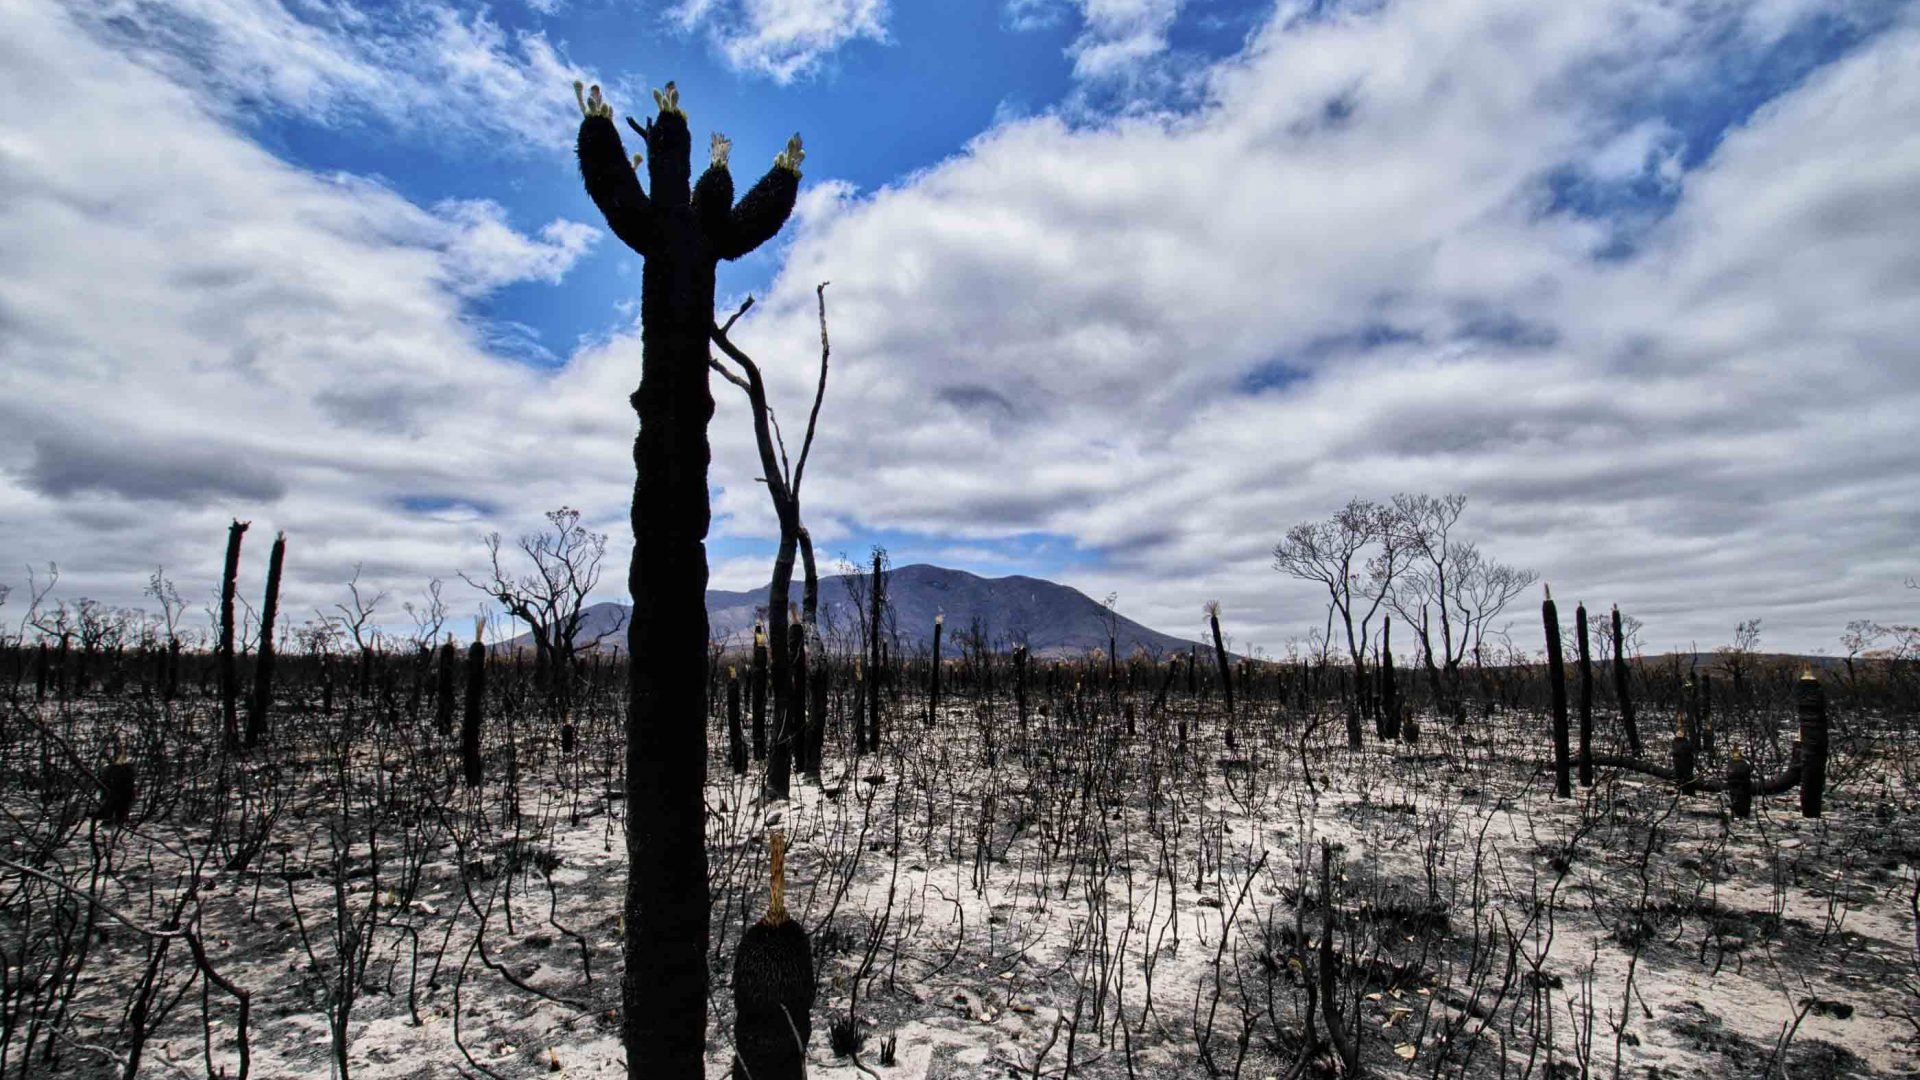 The scorched Australian landscape after a fire has swept through.